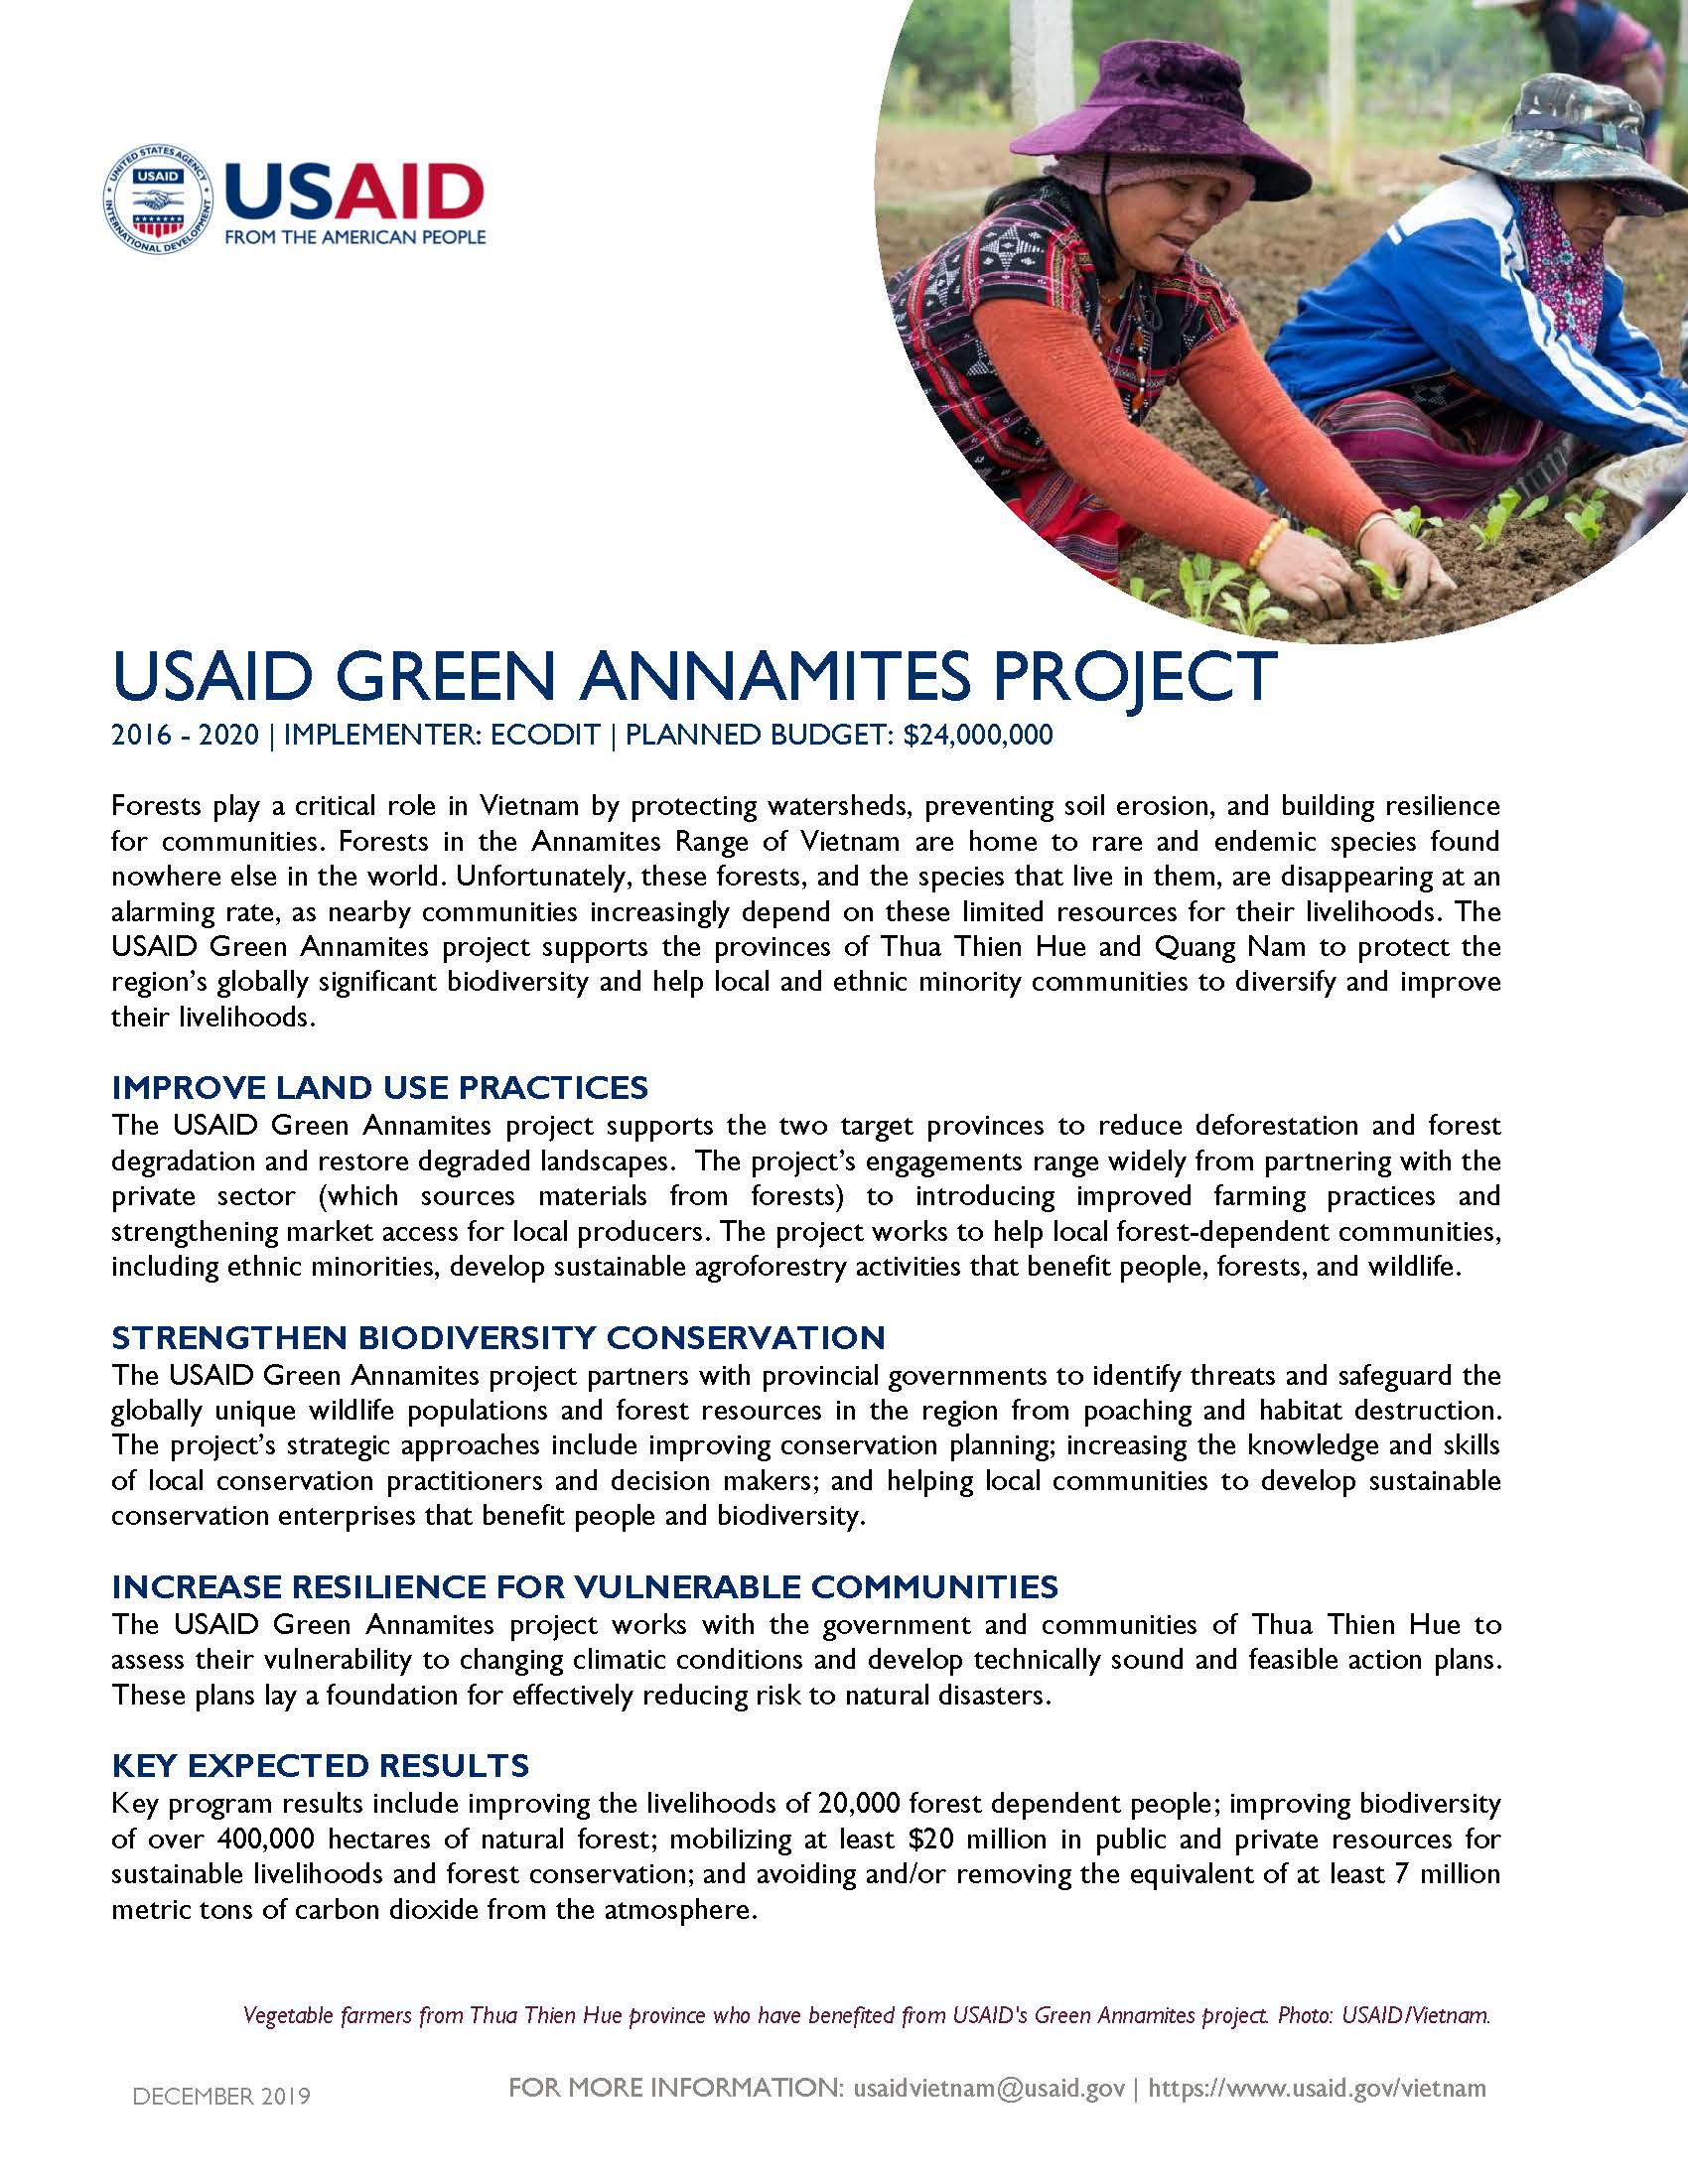 Fact sheet: USAID Green Annamites project